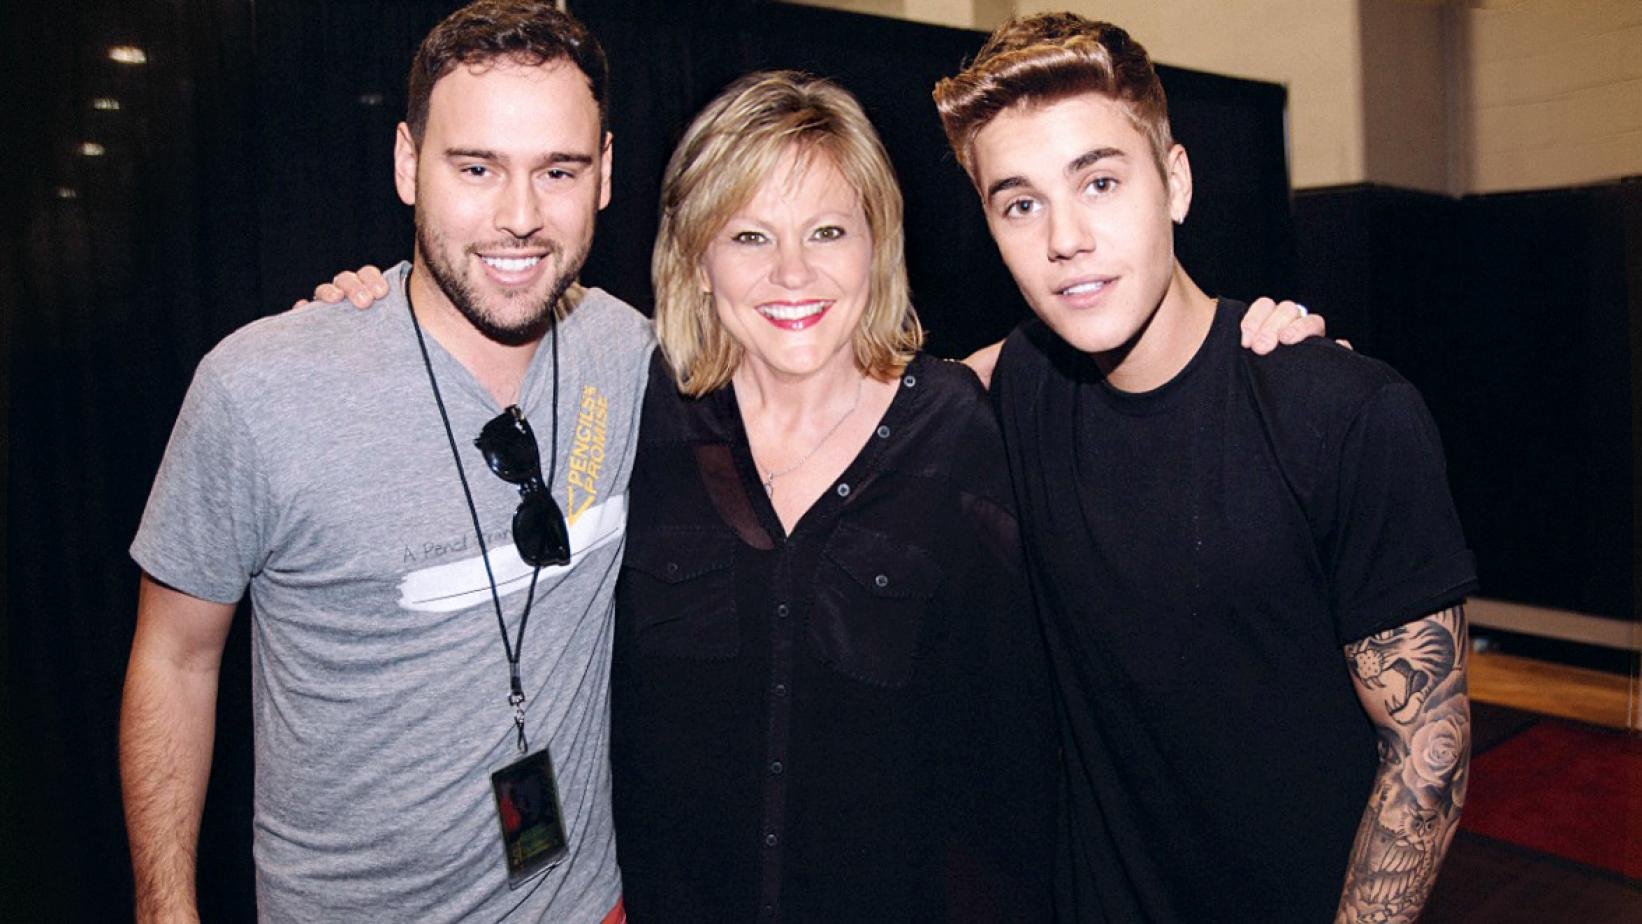 Scooter Braun (Justin Bieber's Manager), Jan Smith (Vocal Coach), and Justin Bieber